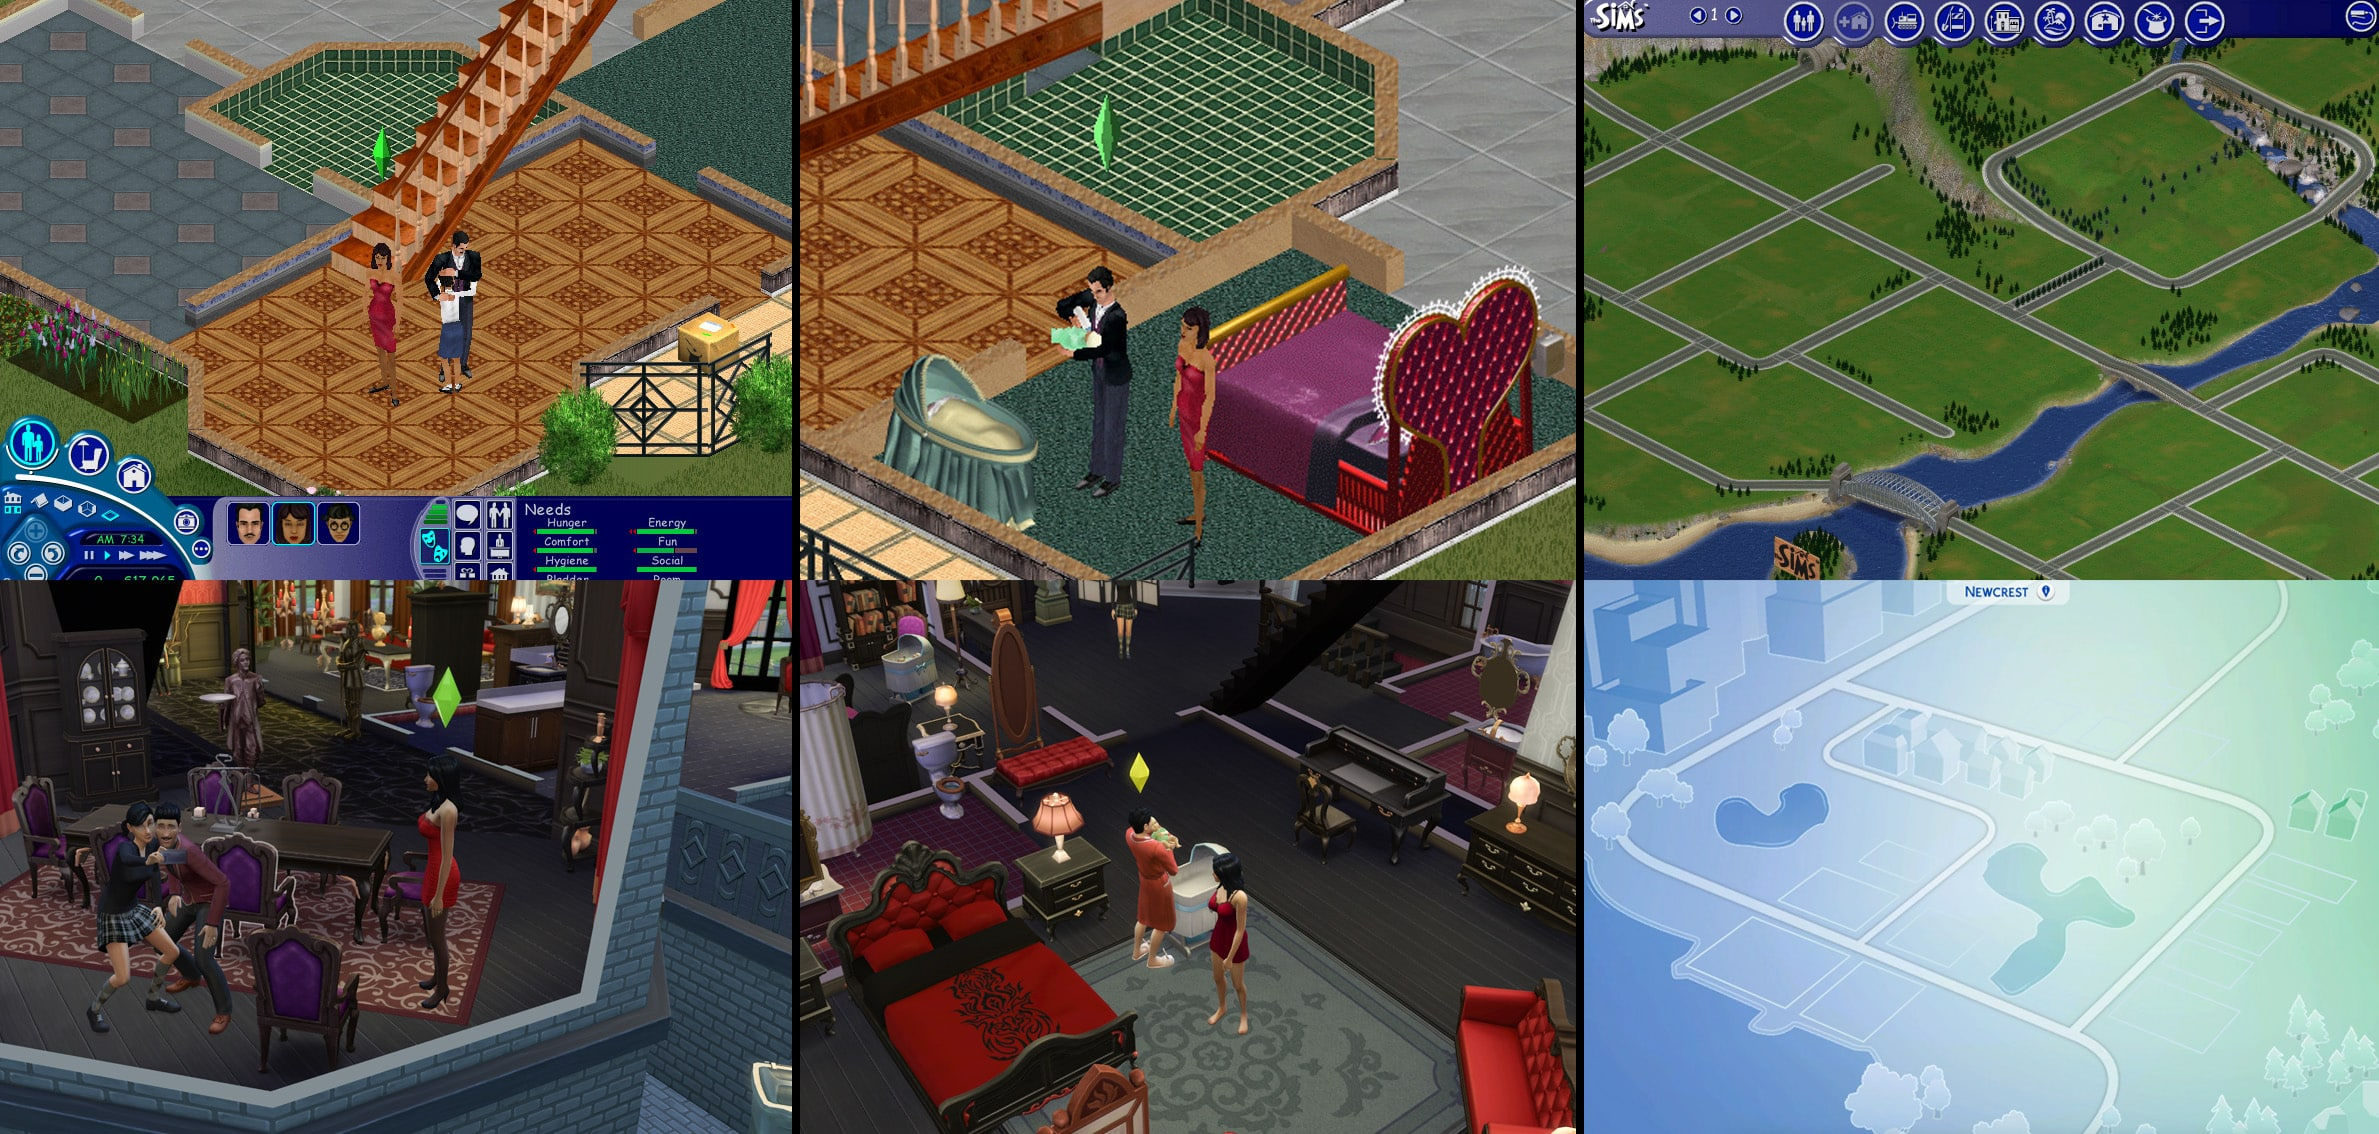 Sims 4 and Sims 1 Comparison